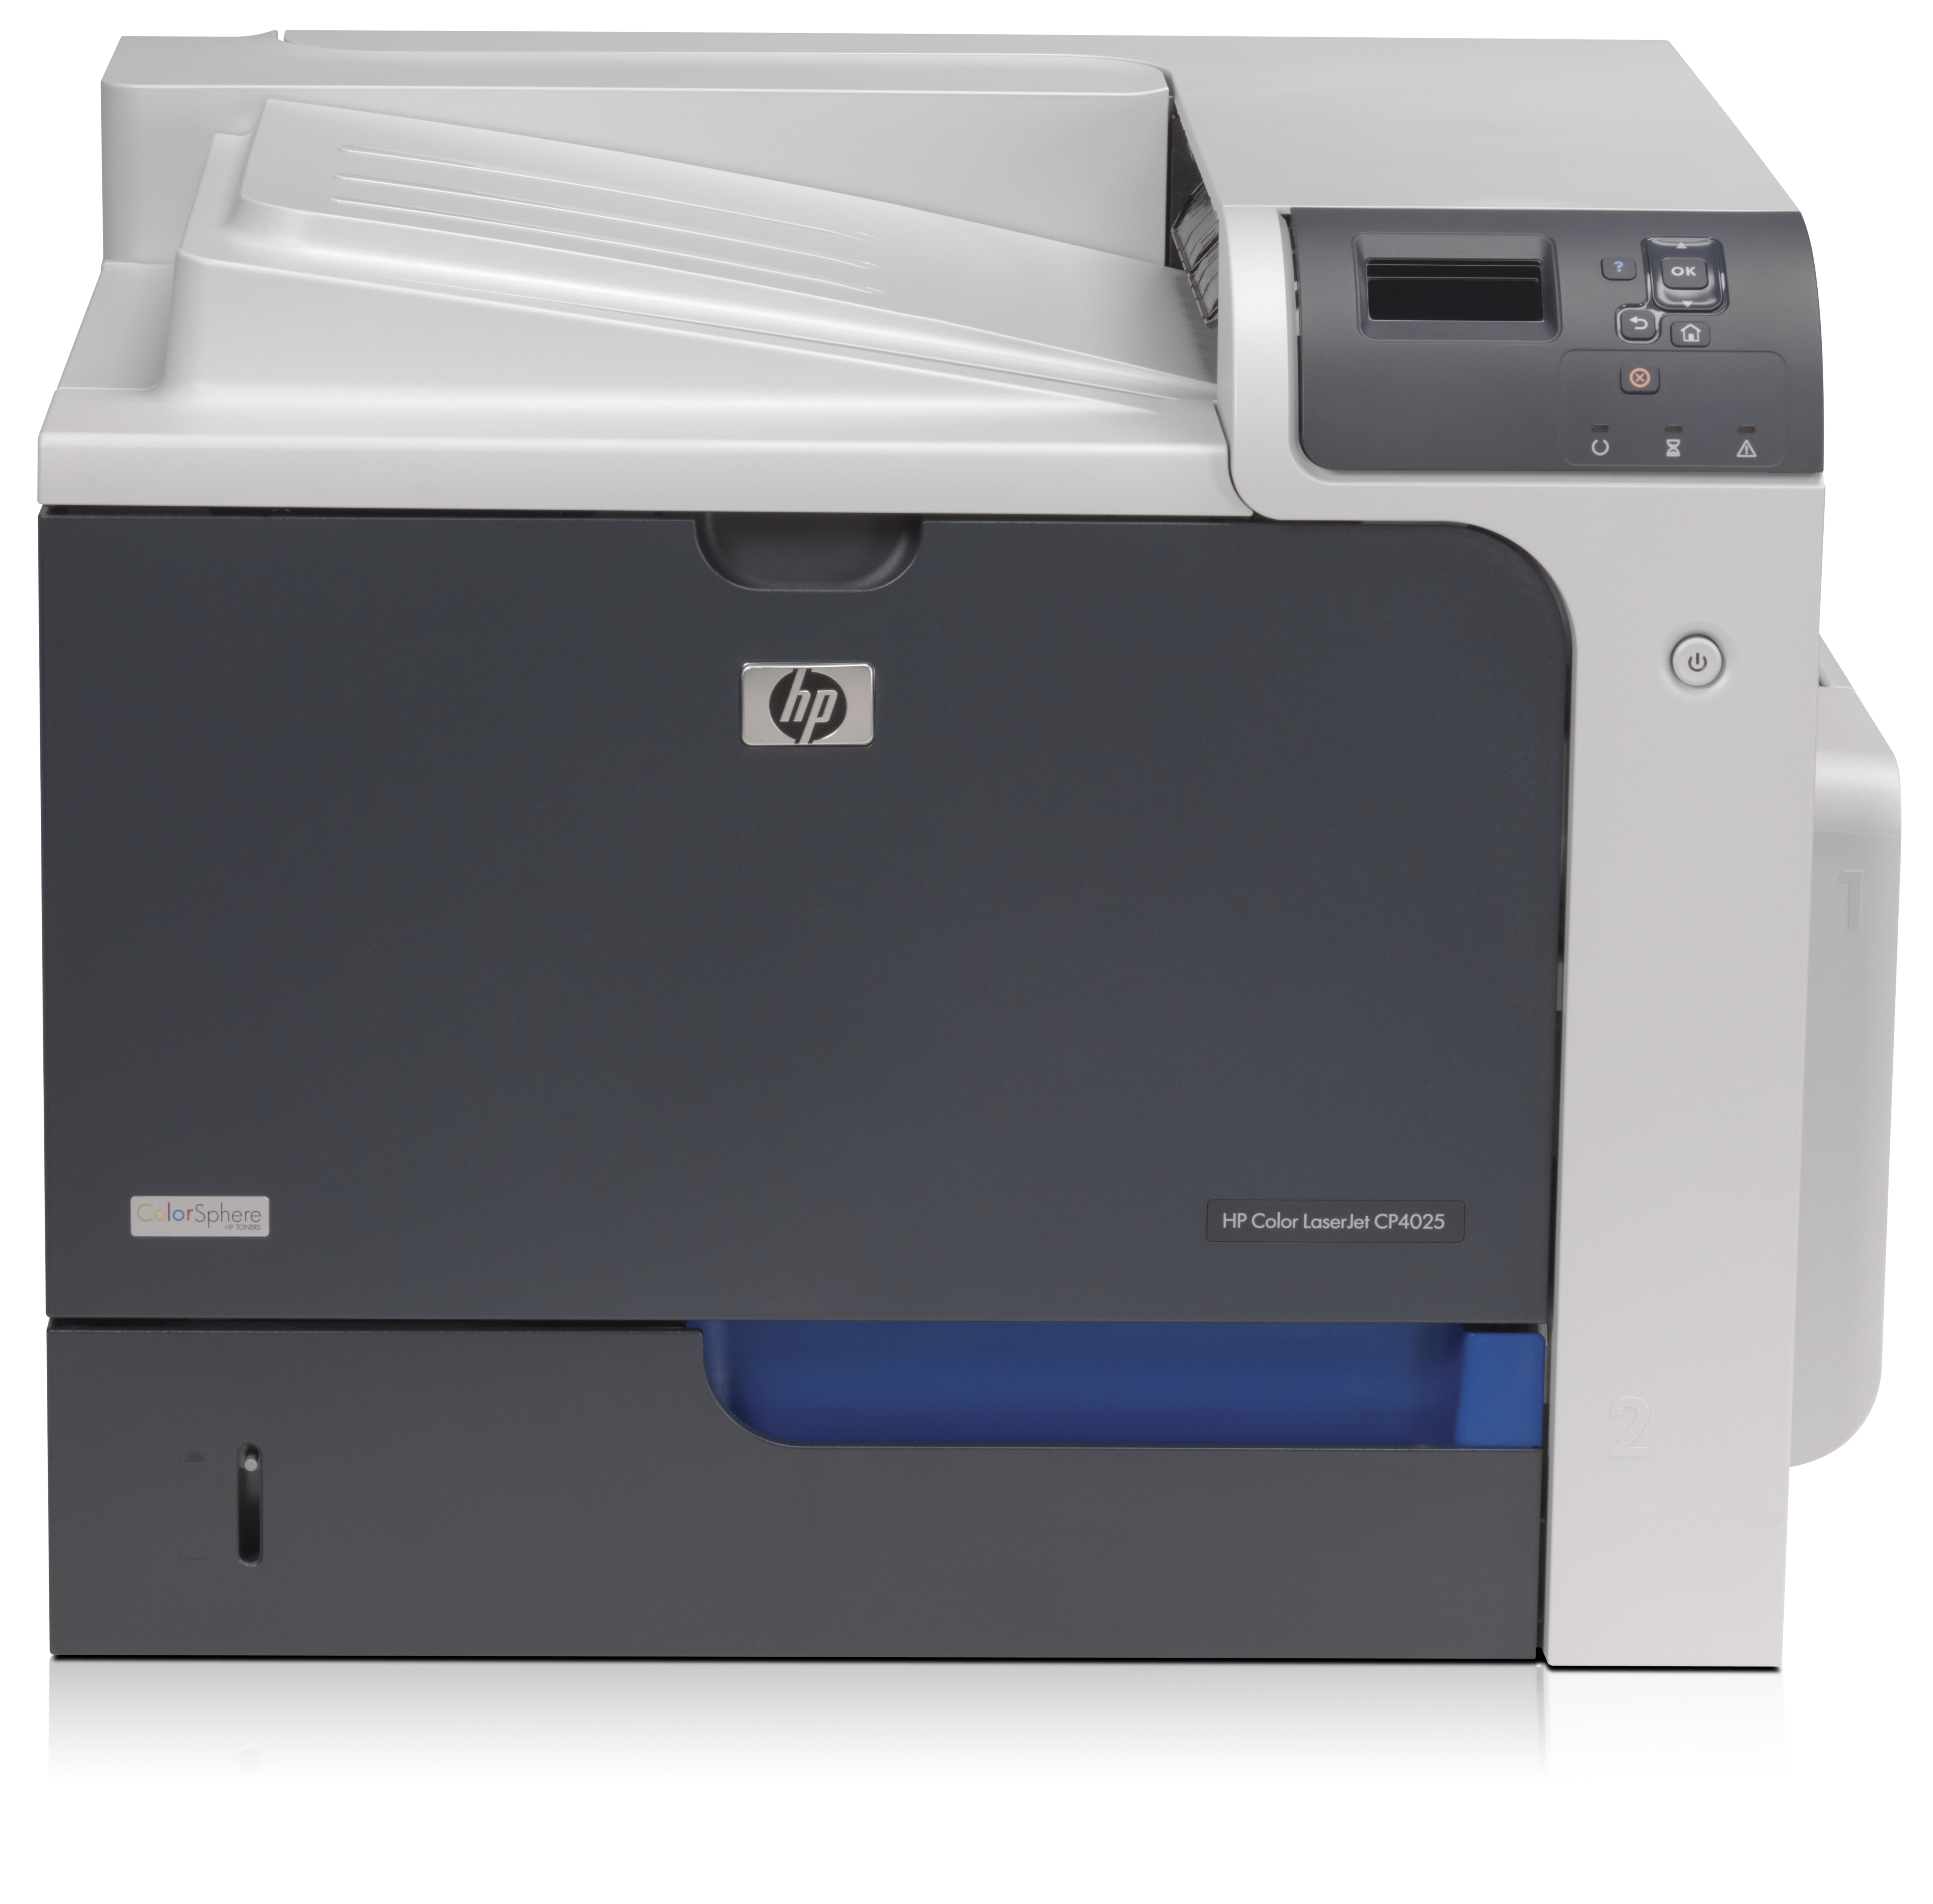 HP Laserjet CP4025N Printer CC489A - Refurbished